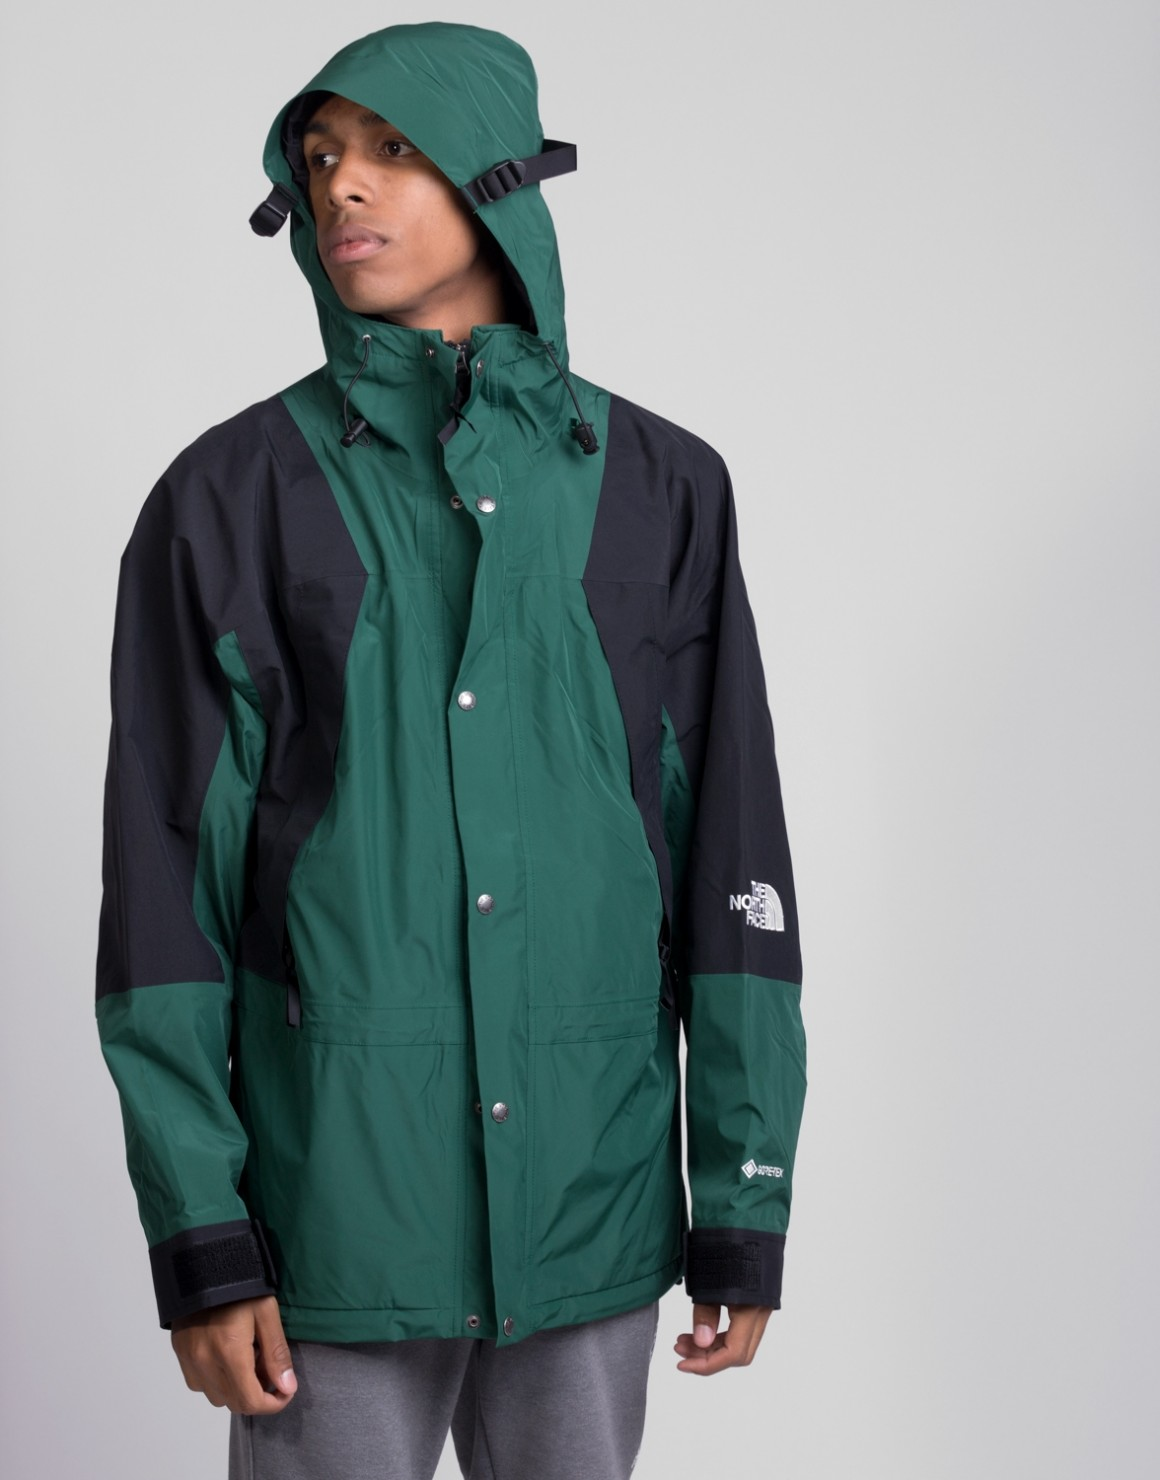 1994 Retro Mountain Light Goretex Jacket